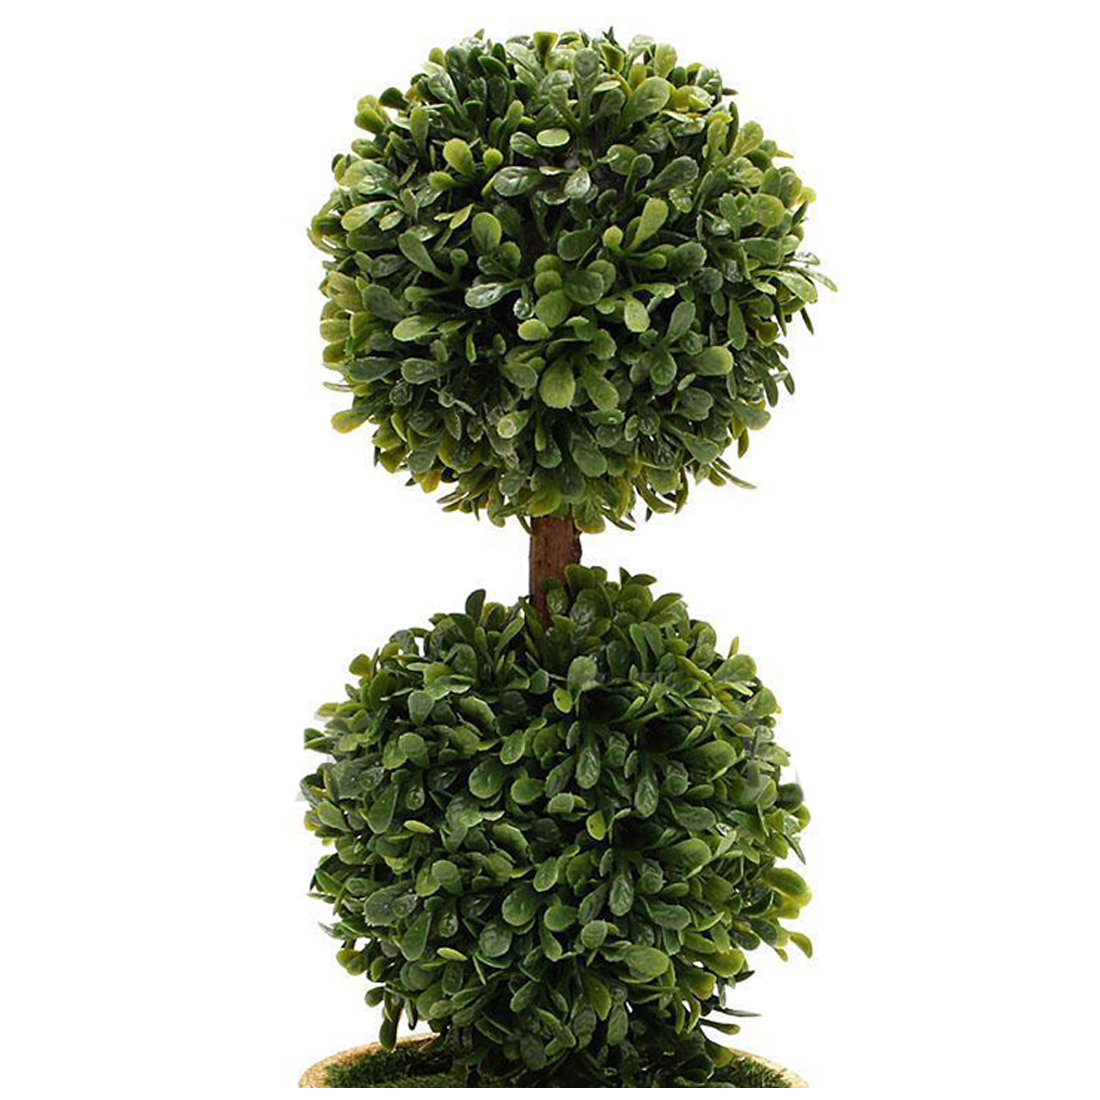 Artificial Plastic Trees In Pots Plant Potted Decor Garden Yard Two ...